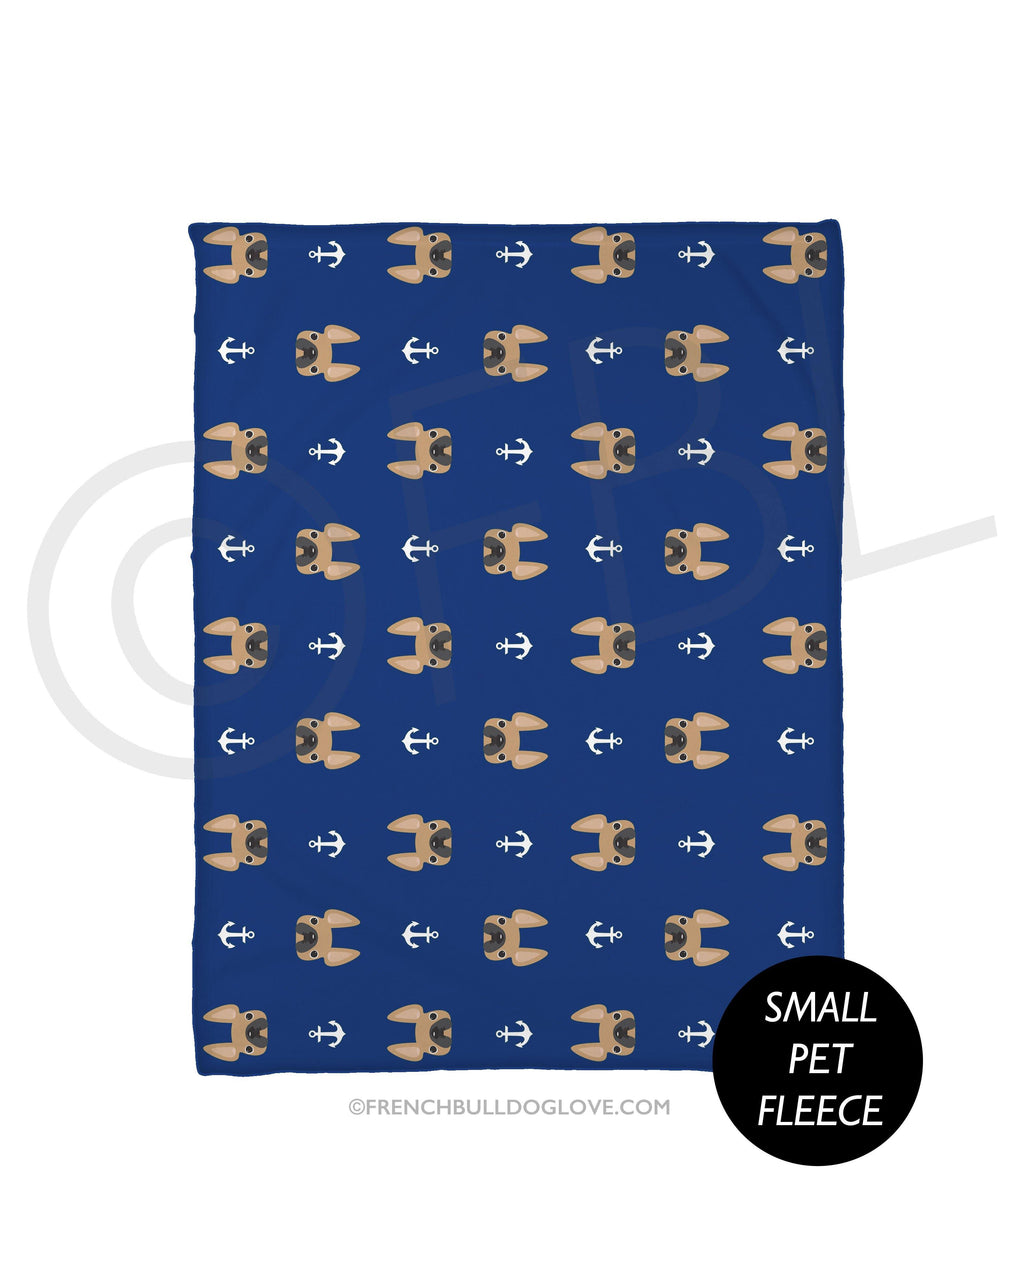 Anchors Fawn French Bulldog Fleece Blanket - Small